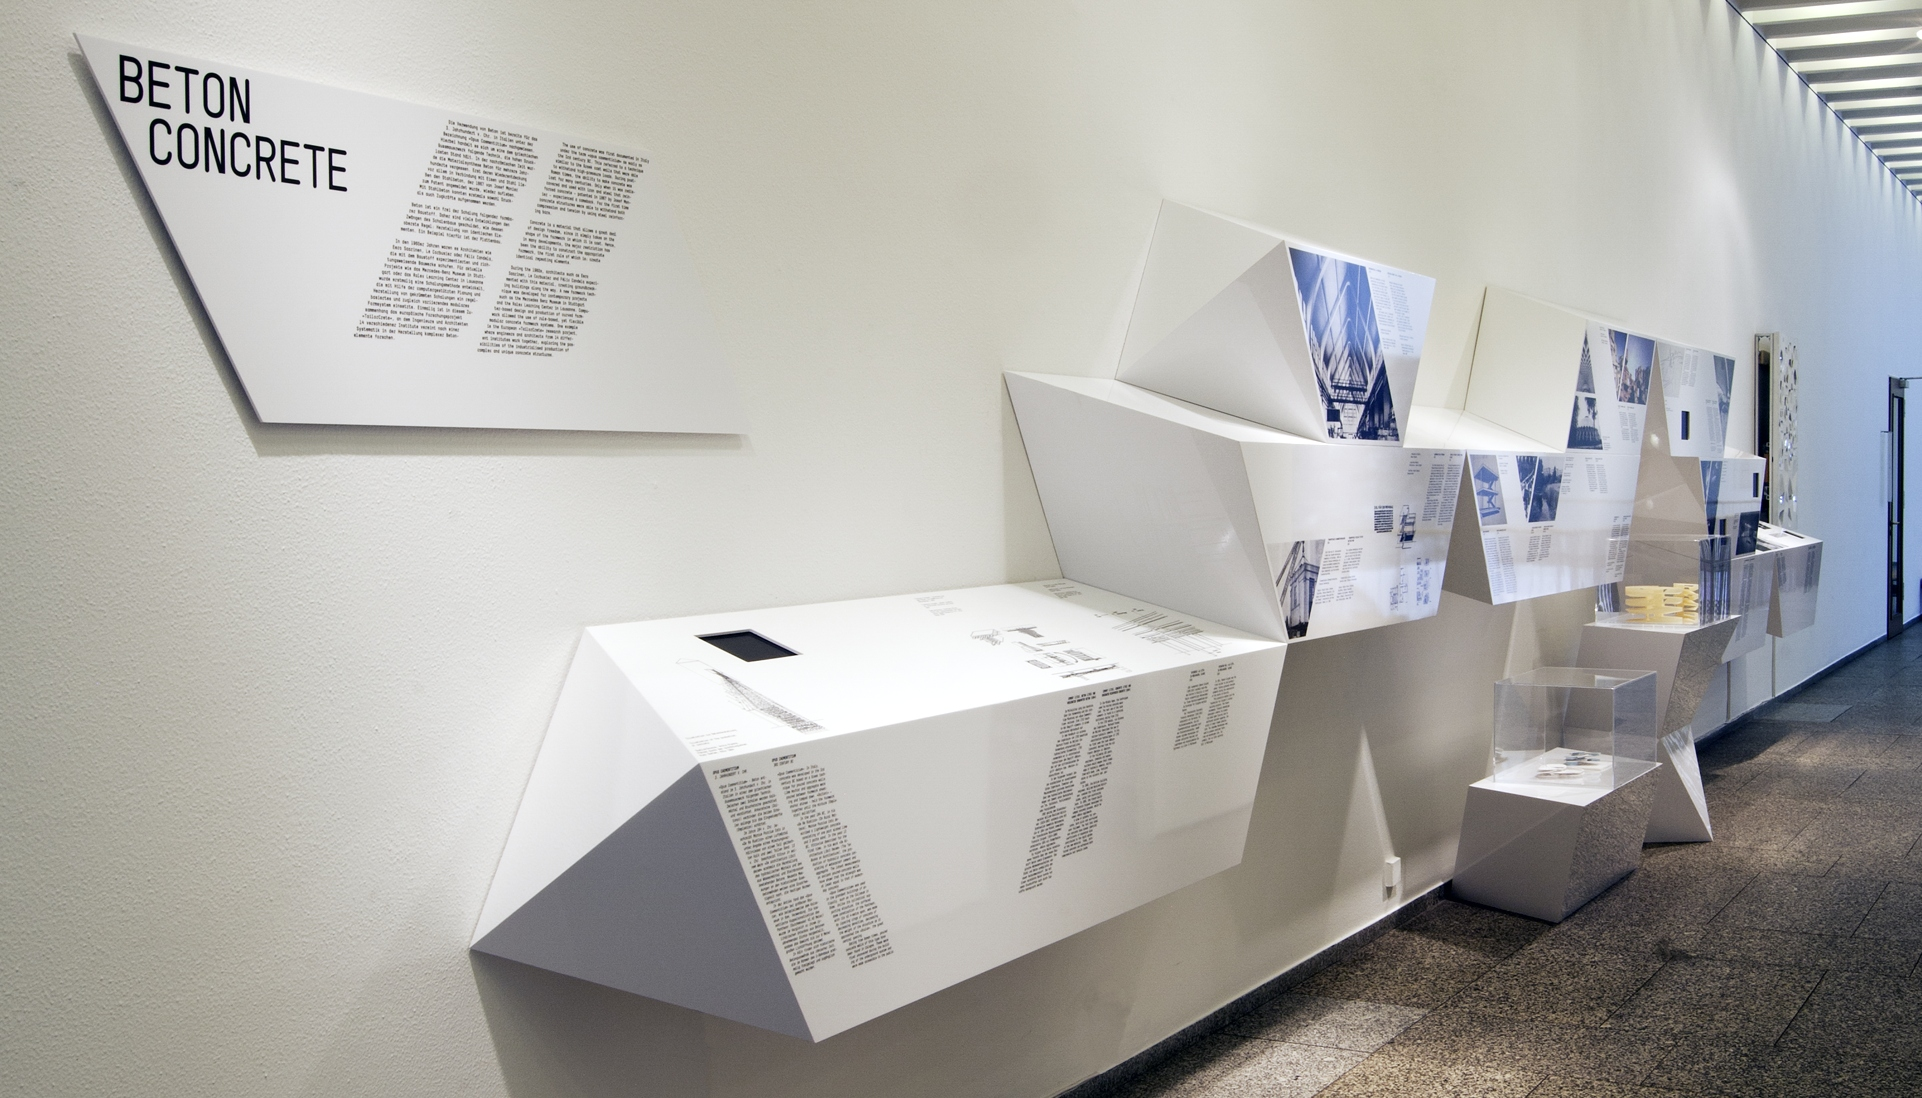 Exhibition Design For Architectural Particles